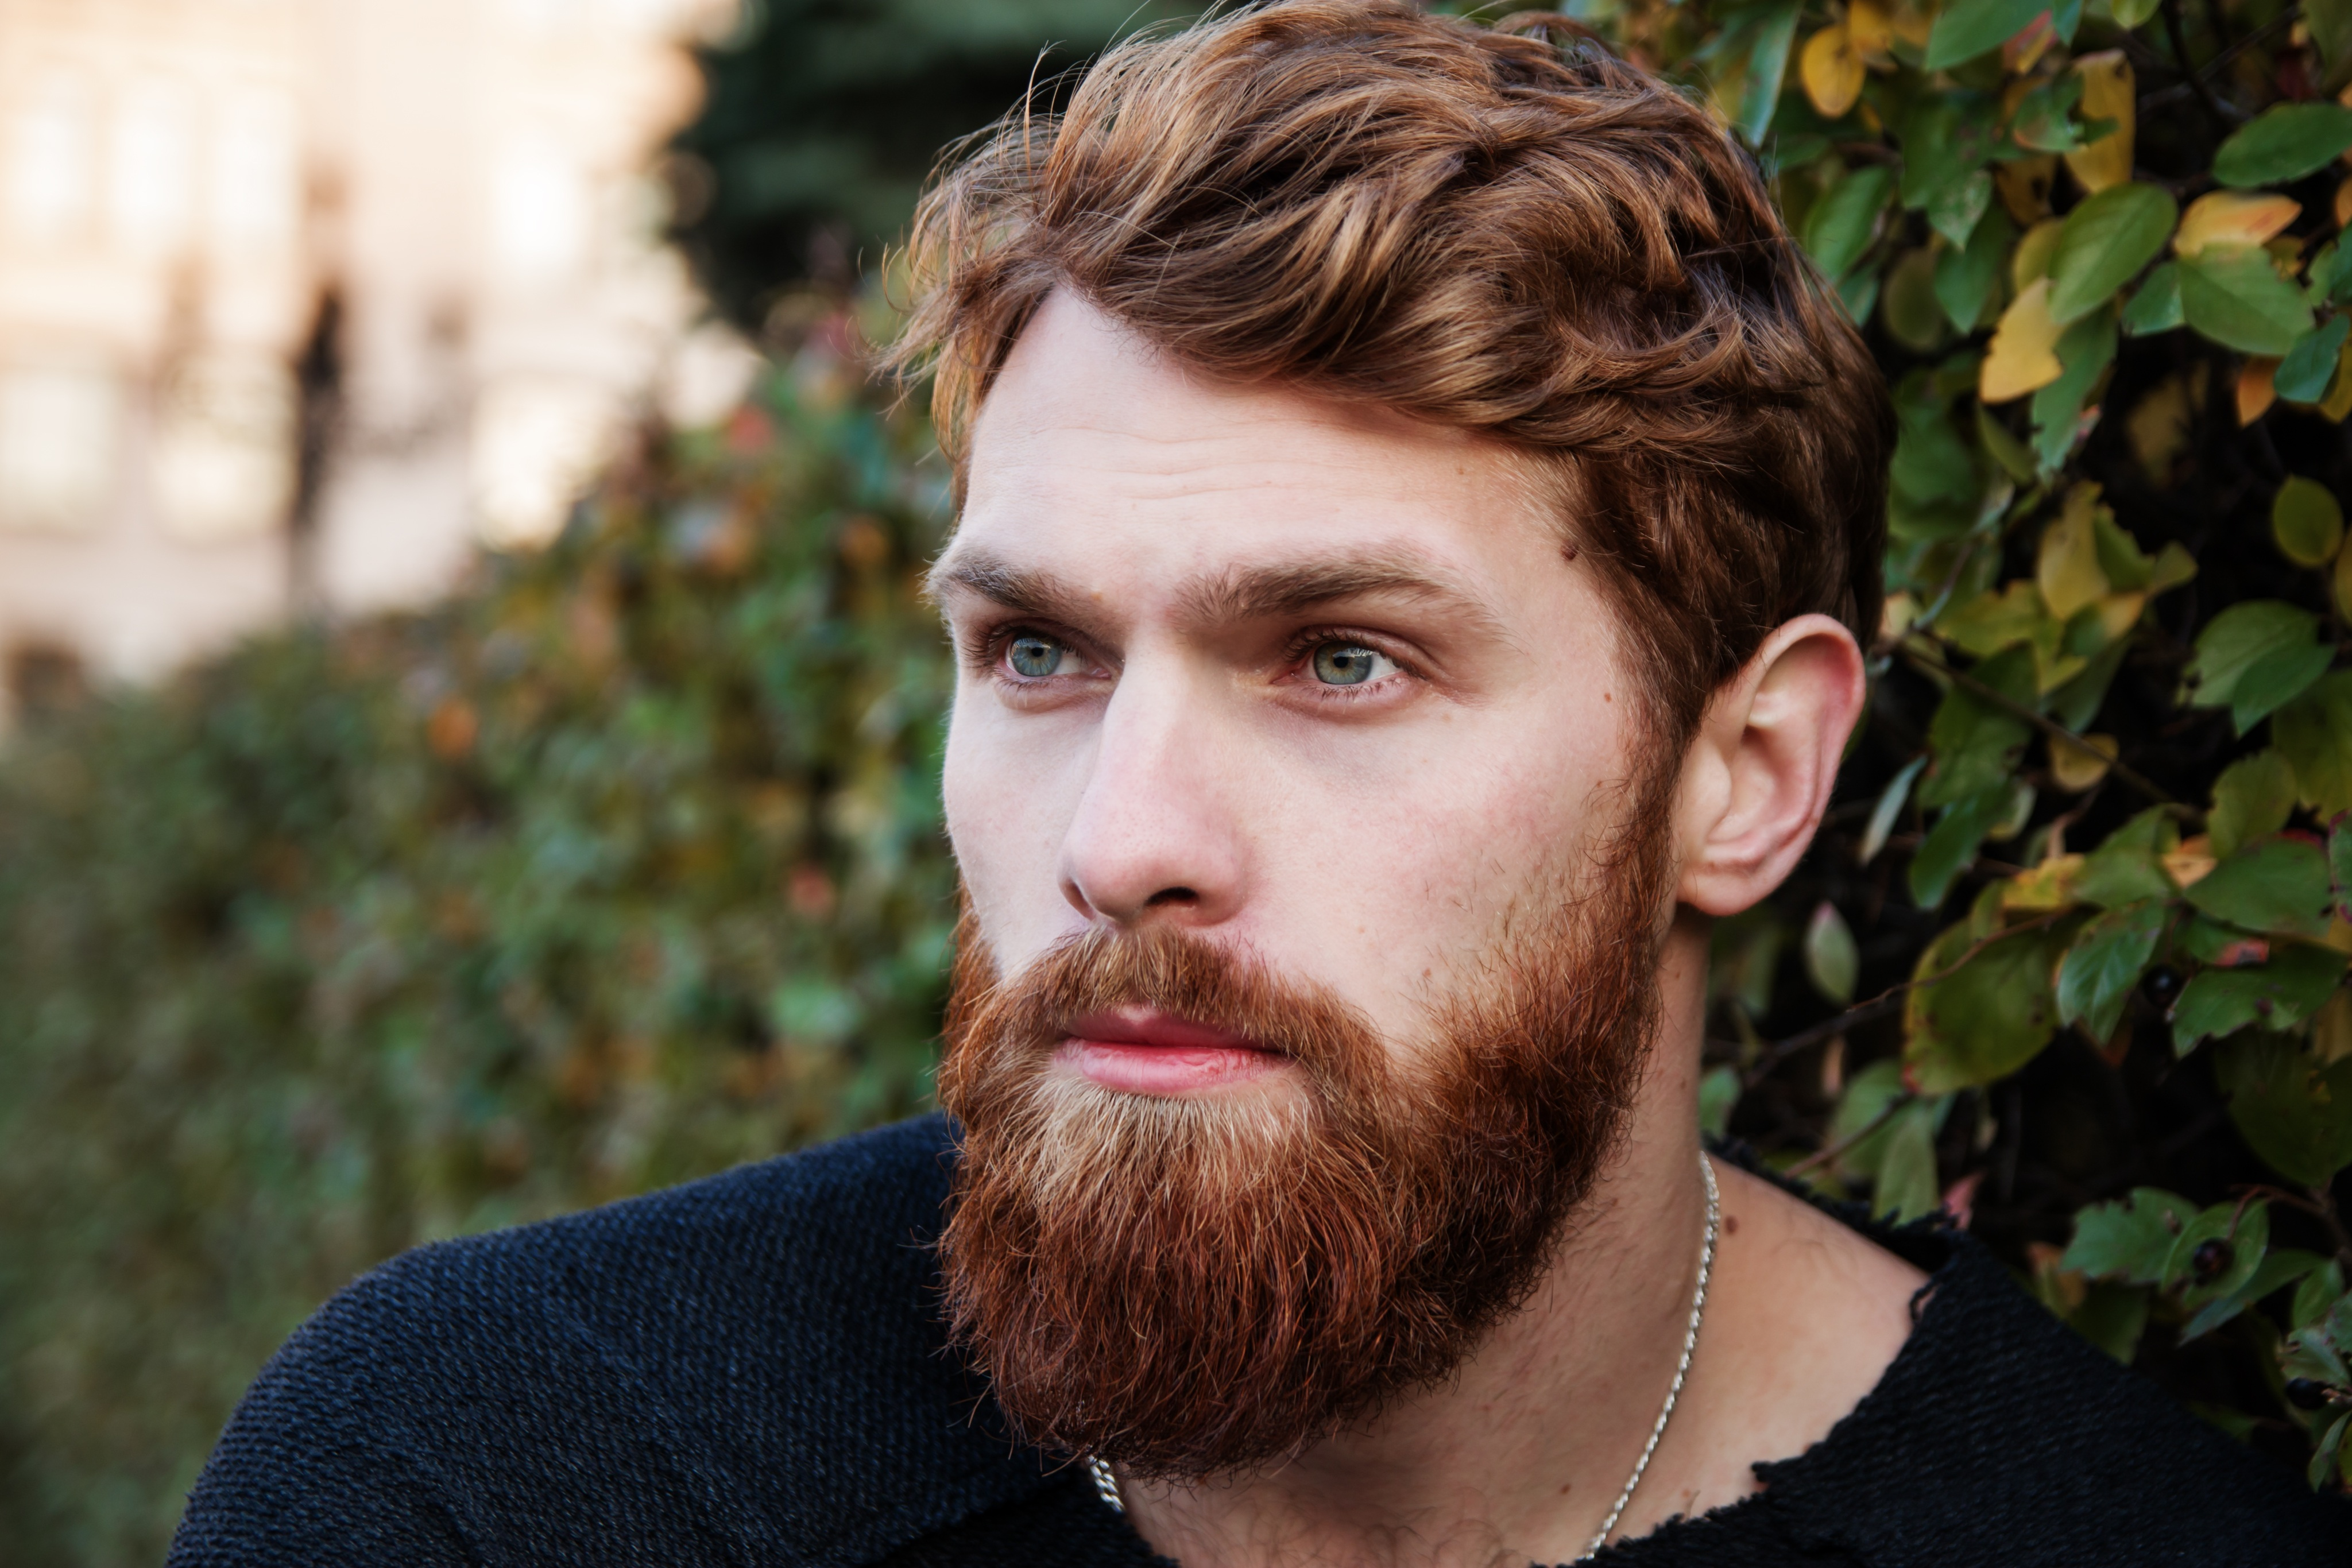 Free stock photos of beard pexels portrait of young man urmus Image collections